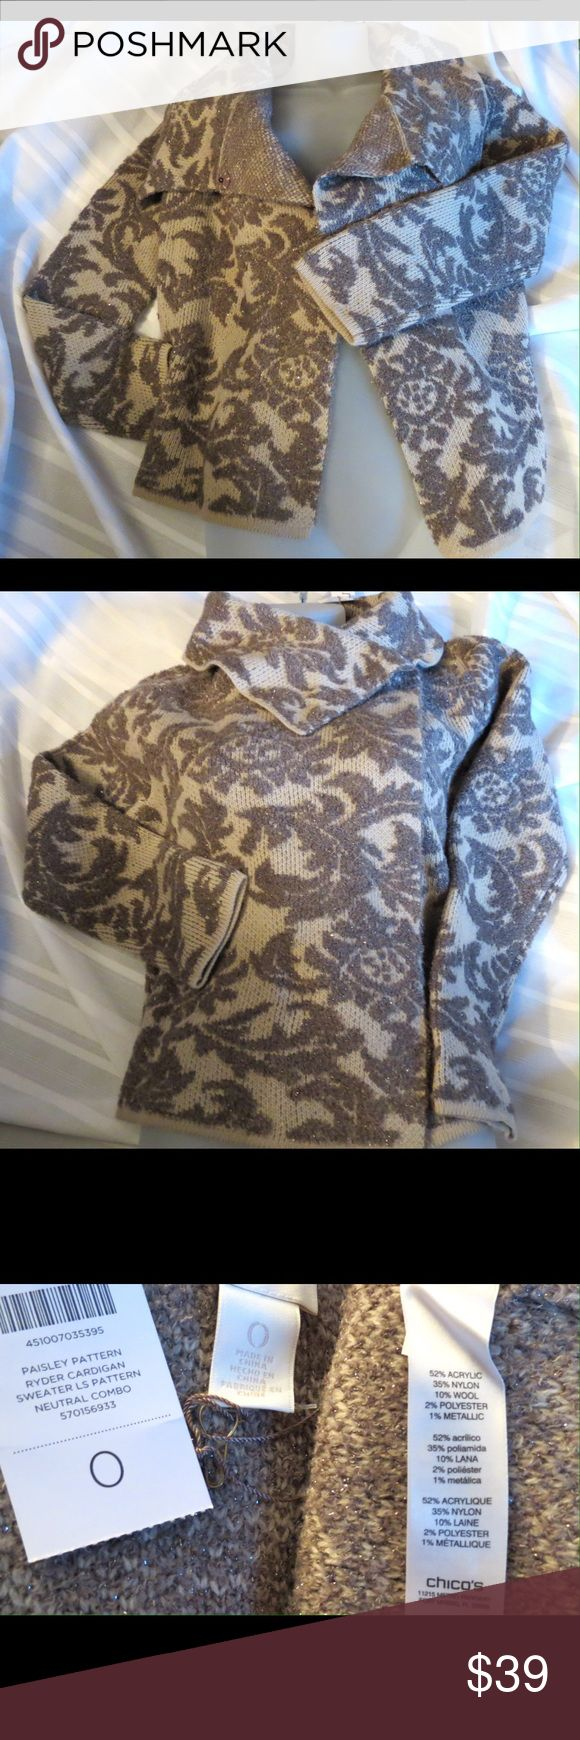 "NWT Stunning  Unique Chico's Sweater Jacket Size 0 NWT Stunning  Unique Chico's Sweater Jacket Size 0  This is a Chico's size 0 which is regular size  Small or 4  This is a subtle paisley Pattern Ryder Cardigan in neutral shades, absolutely gorgeous! Approx measurements  Sleeves  24"" Chest  38""  Length 23""  All of my items are Guaranteed 100% Genuine I do not sell FAKES of any kind   No Trades (J3032) Chico's Jackets & Coats"